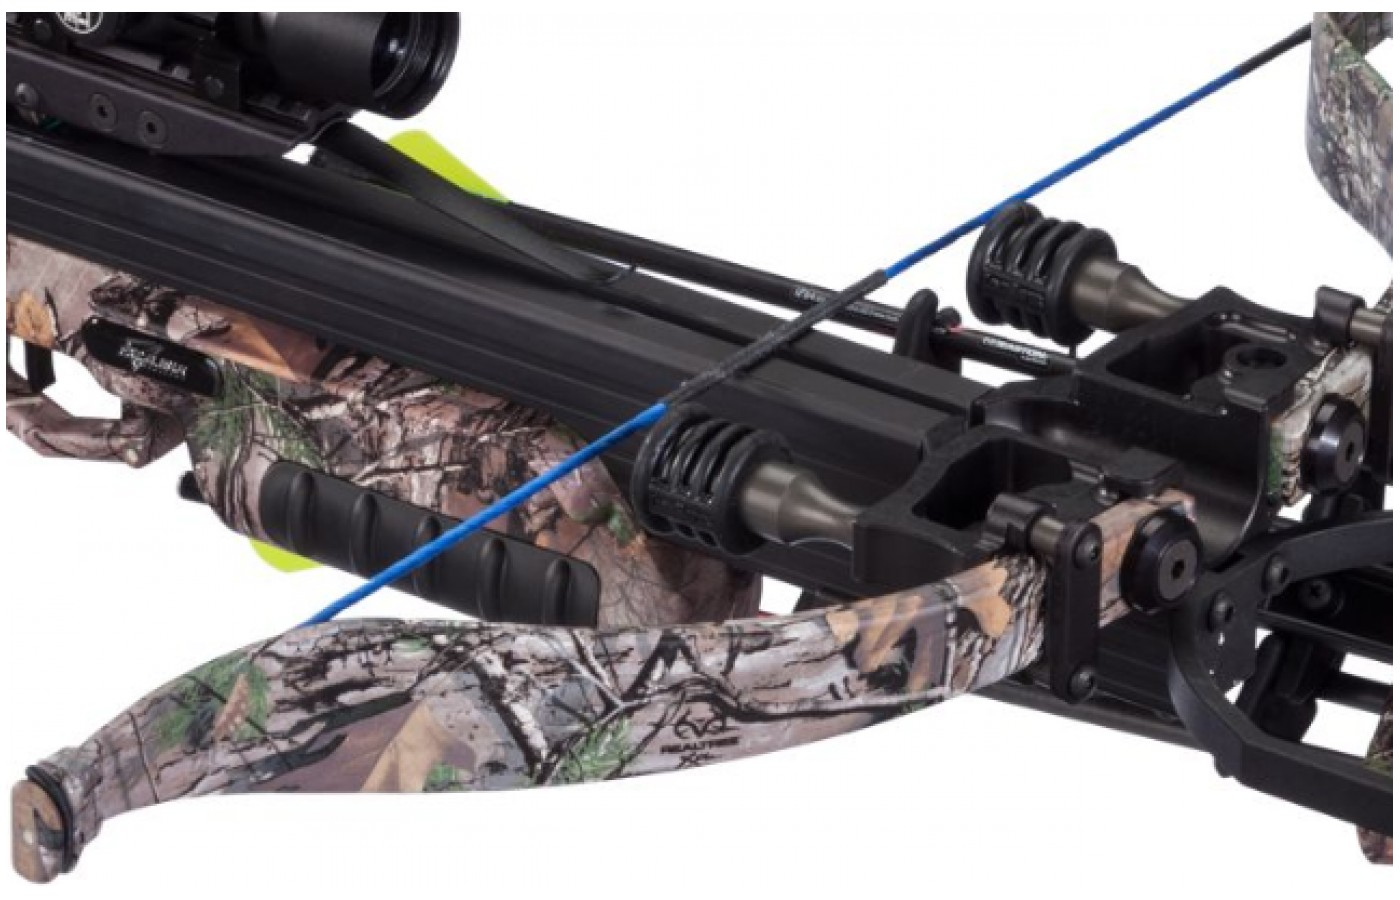 The Realtree Xtra finish contributes to the attractive appearance.